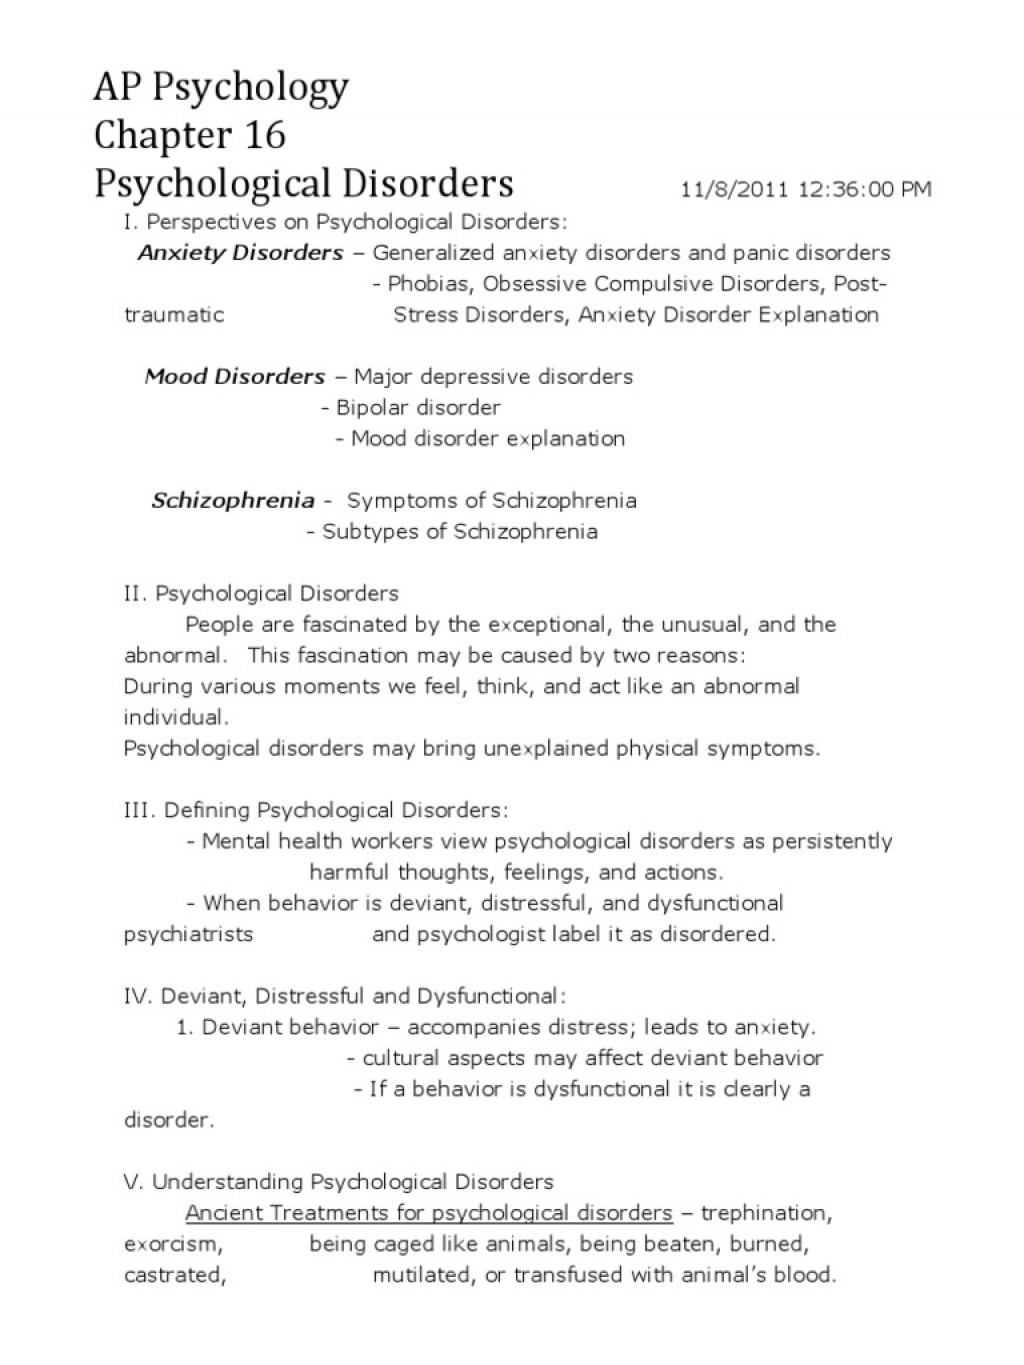 007 Research Paper Bipolar Disorder Essay Topics Title Pdf College Introduction Question Conclusion Examples Outline Rare Psychology Large